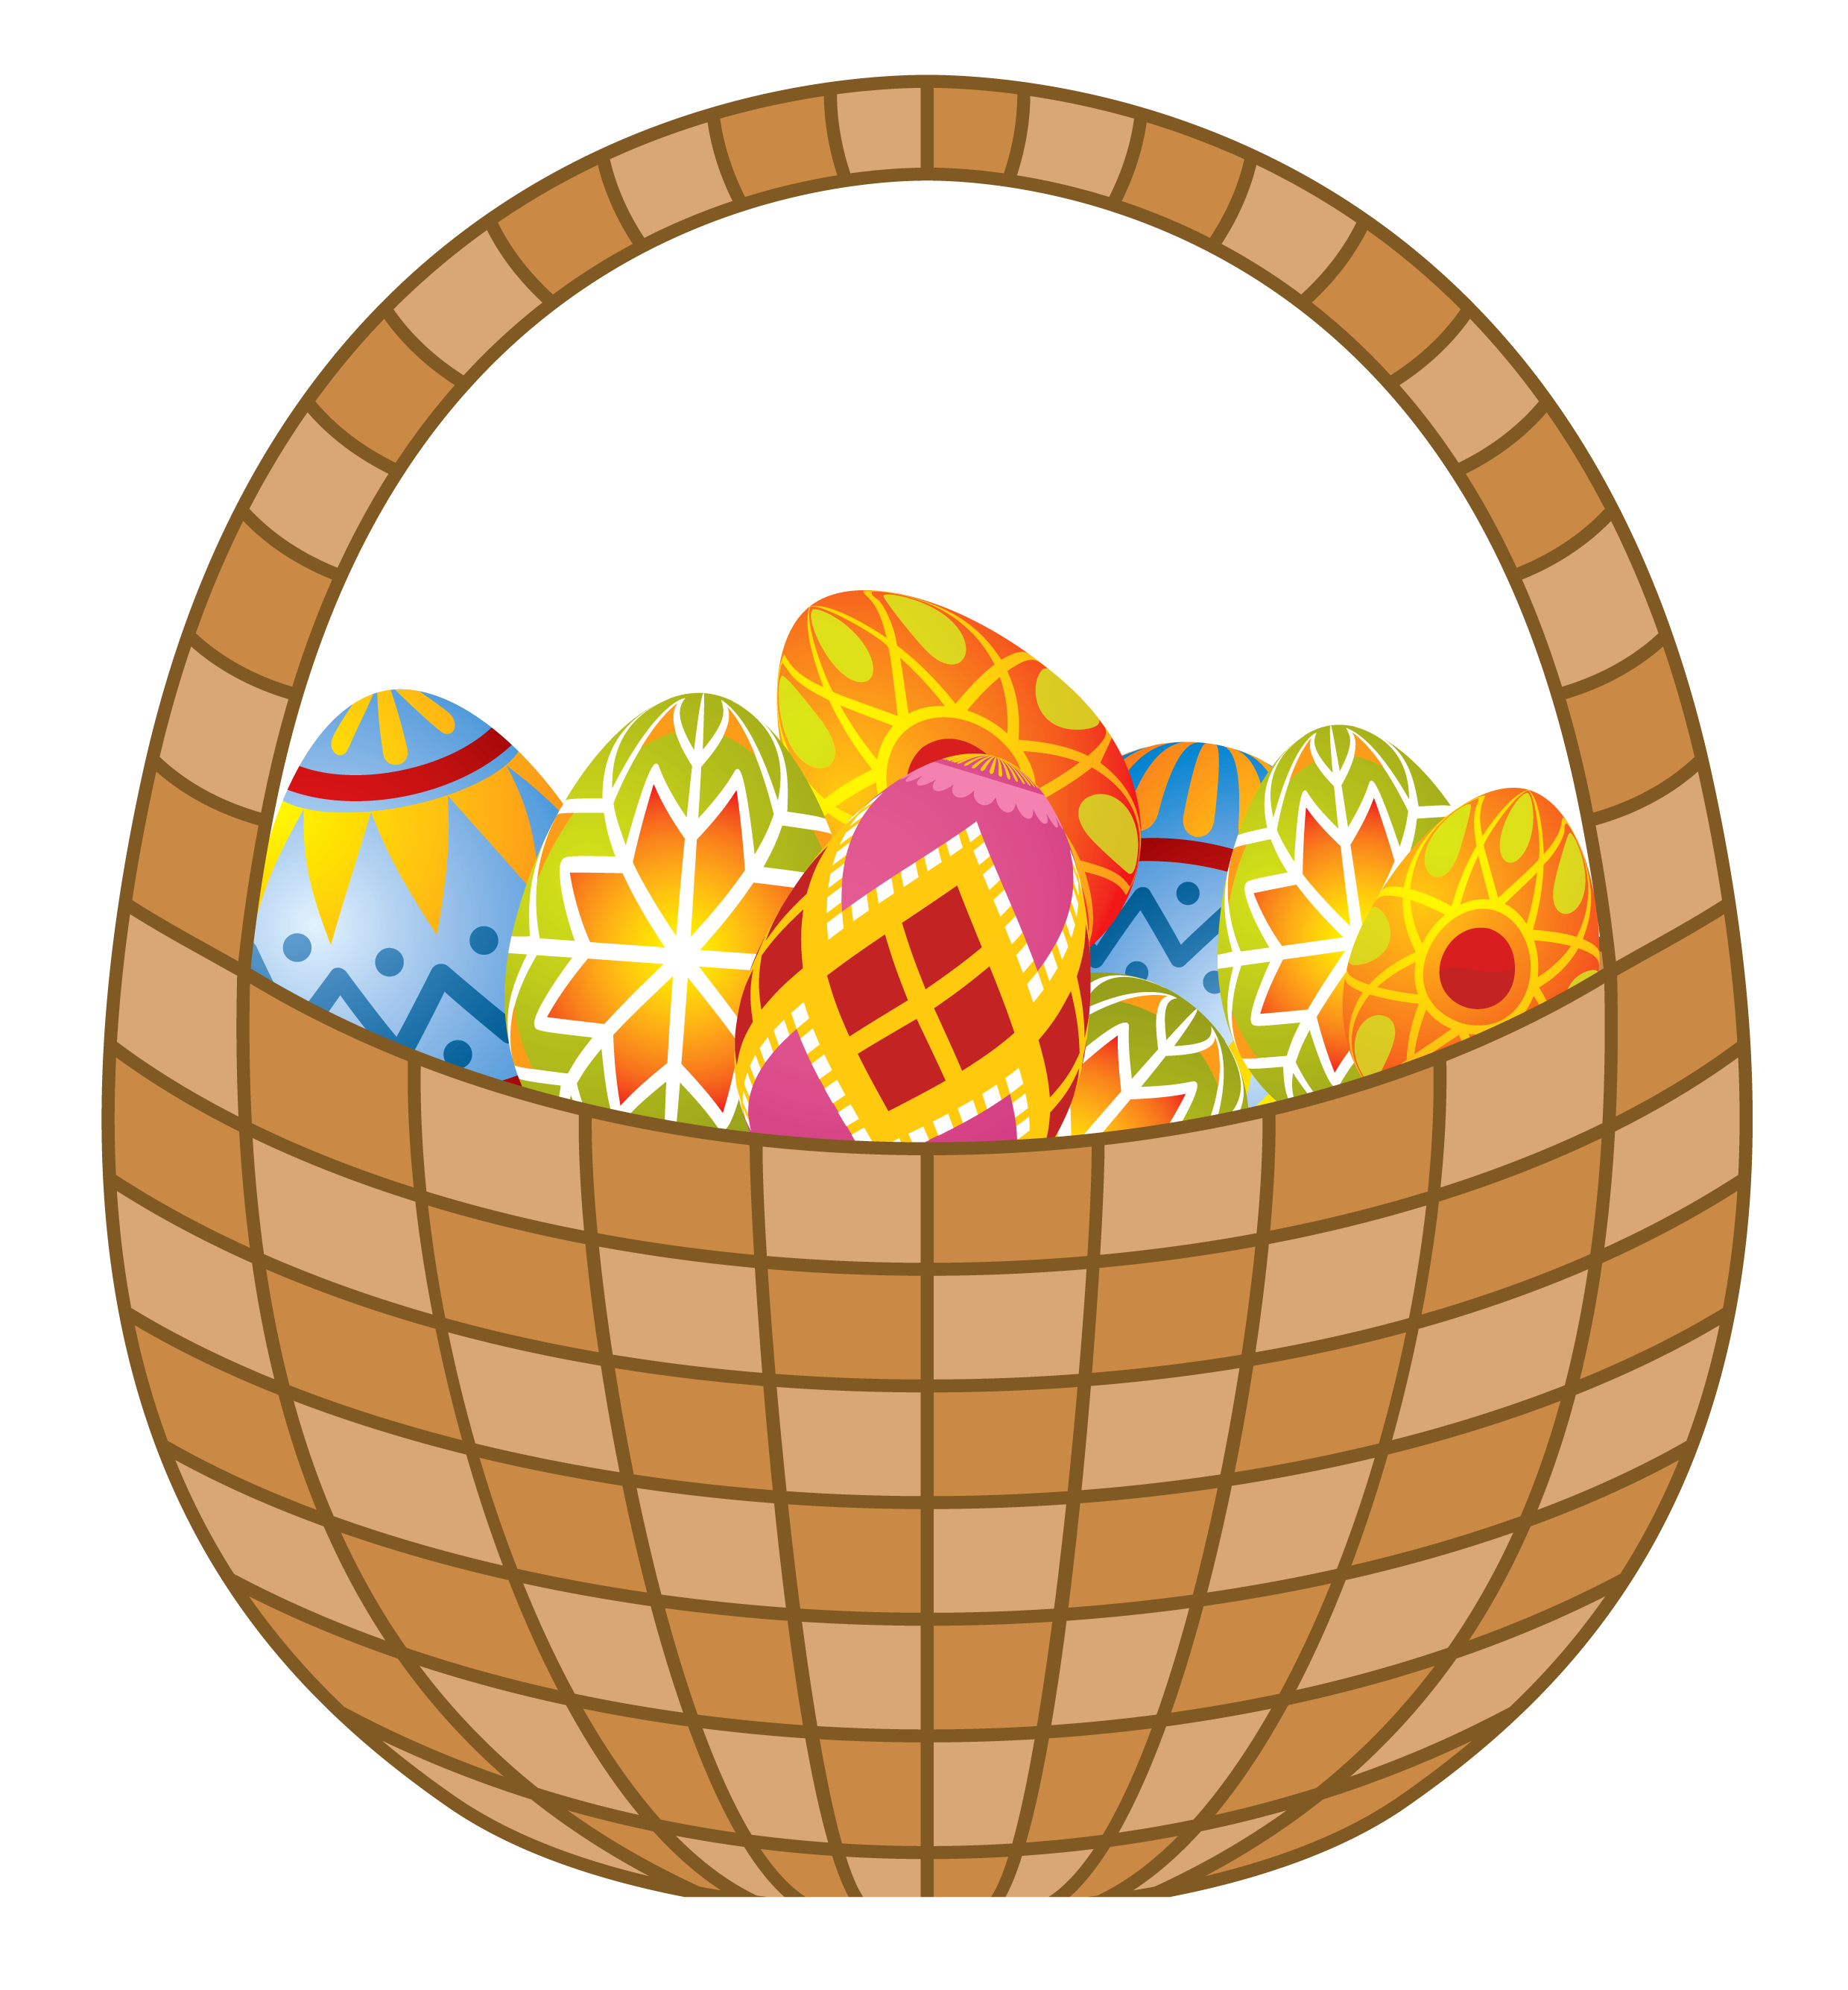 Easter eggs and png. Water clipart basket